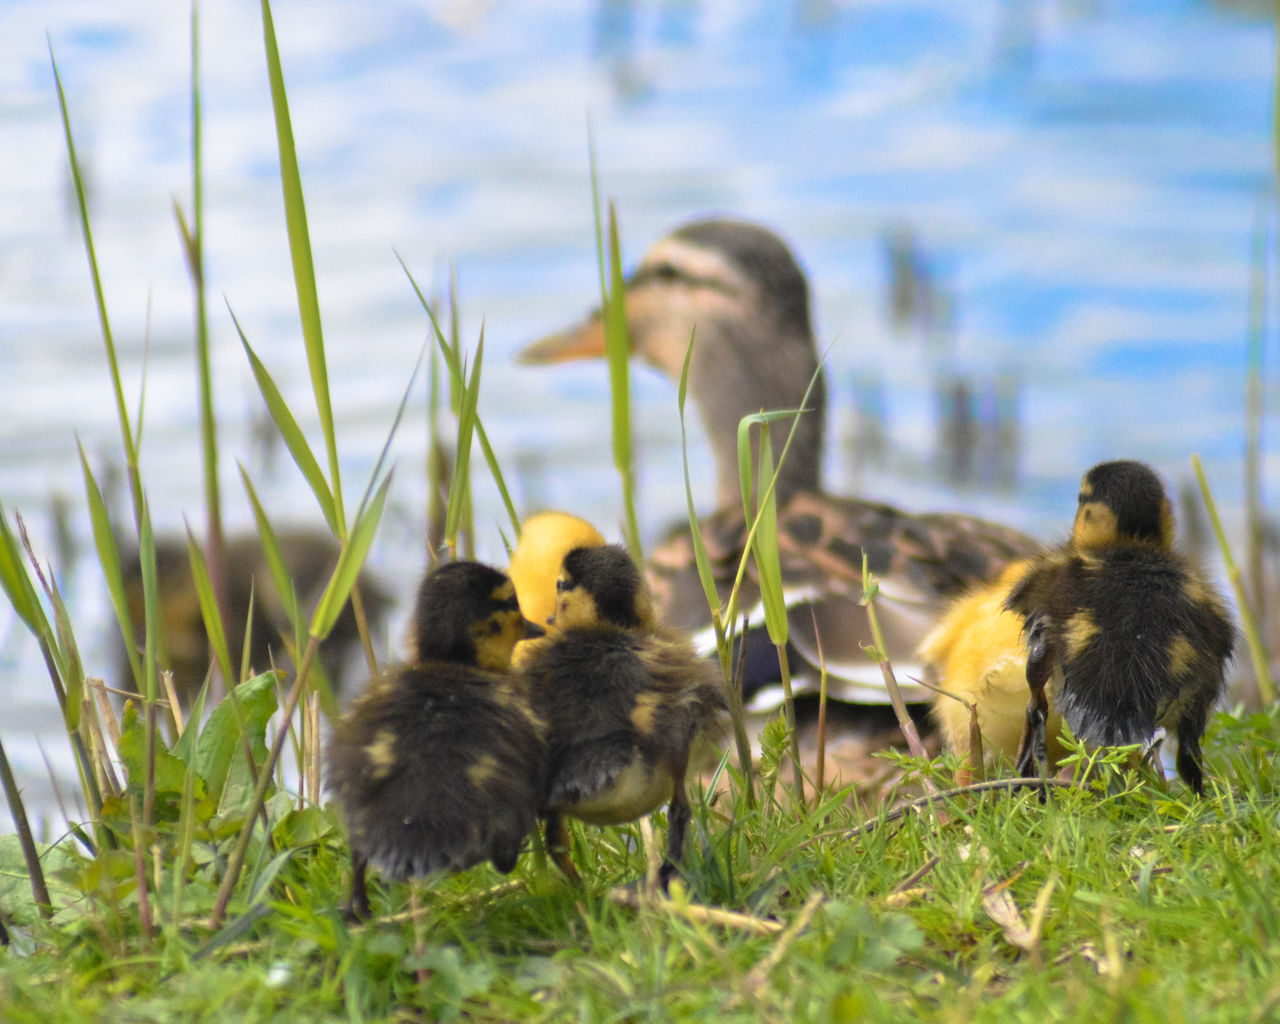 young bird, animal themes, young animal, gosling, lake, animals in the wild, duckling, nature, bird, grass, animal wildlife, water, outdoors, day, animal family, togetherness, no people